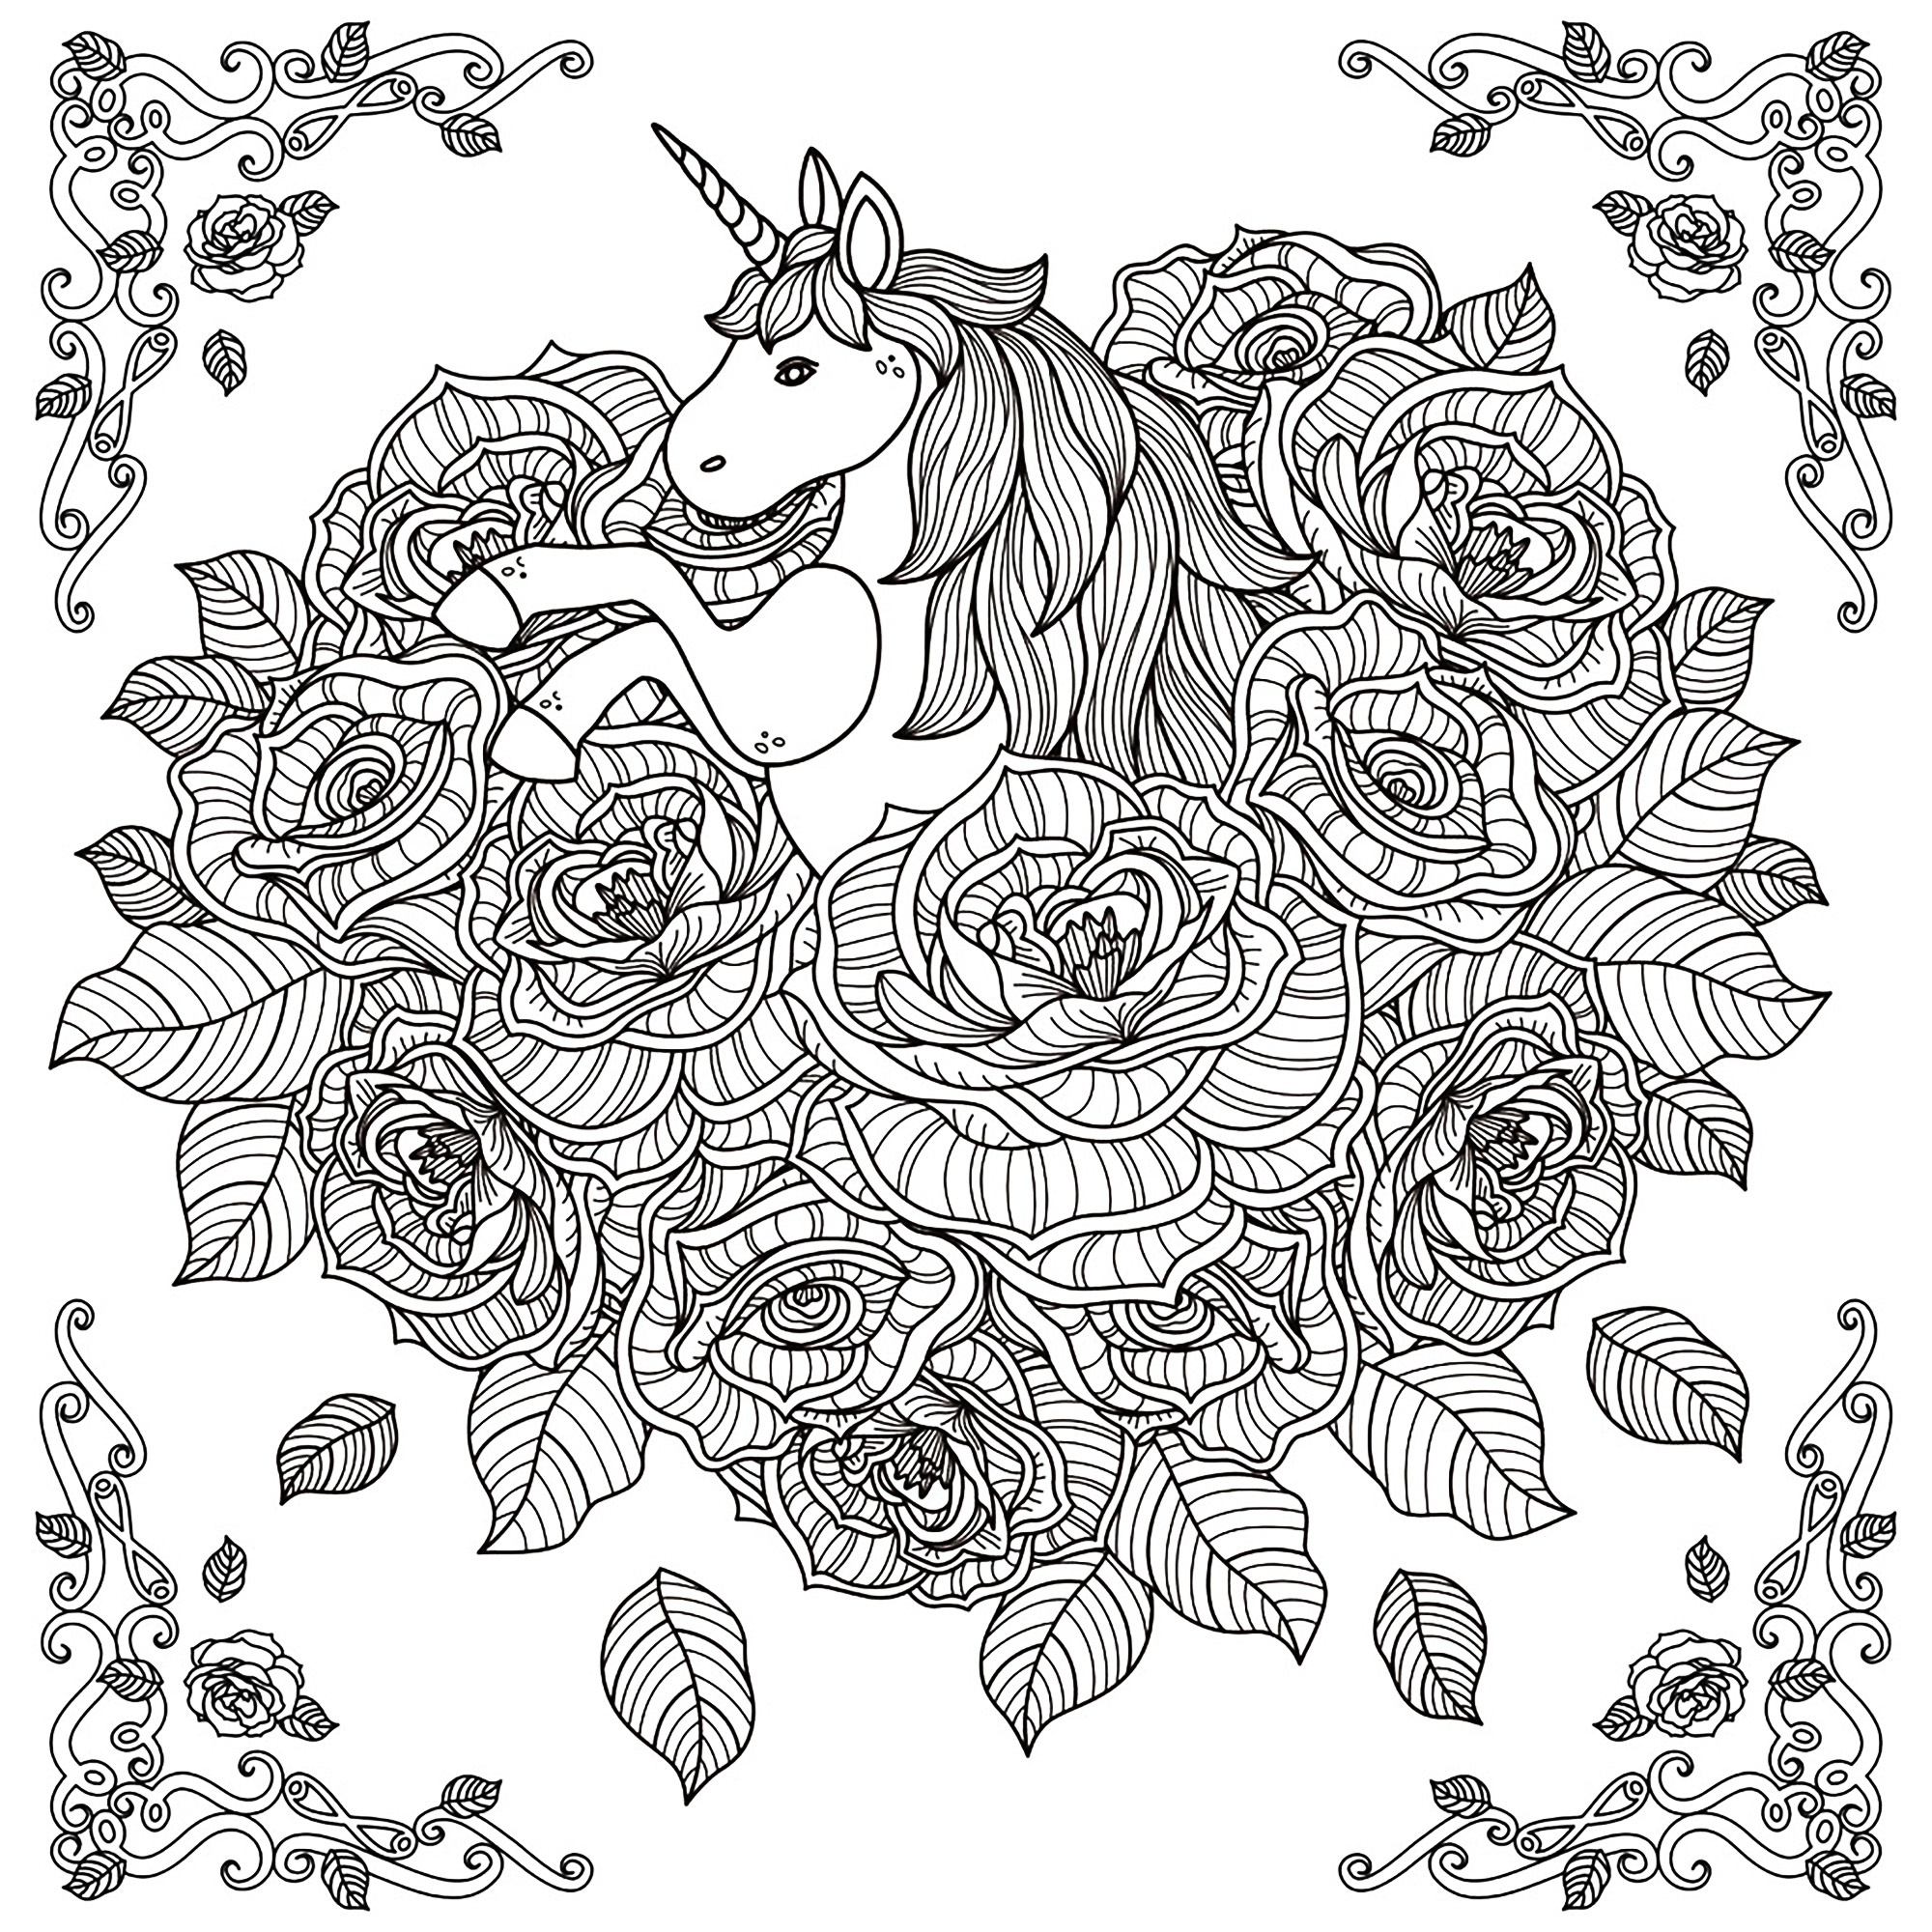 Fresh Unicorn Mandala Coloring Pages Collection Collection Of Modern Intricate Mandala Coloring Pages Coloring for Good Mandala to Print